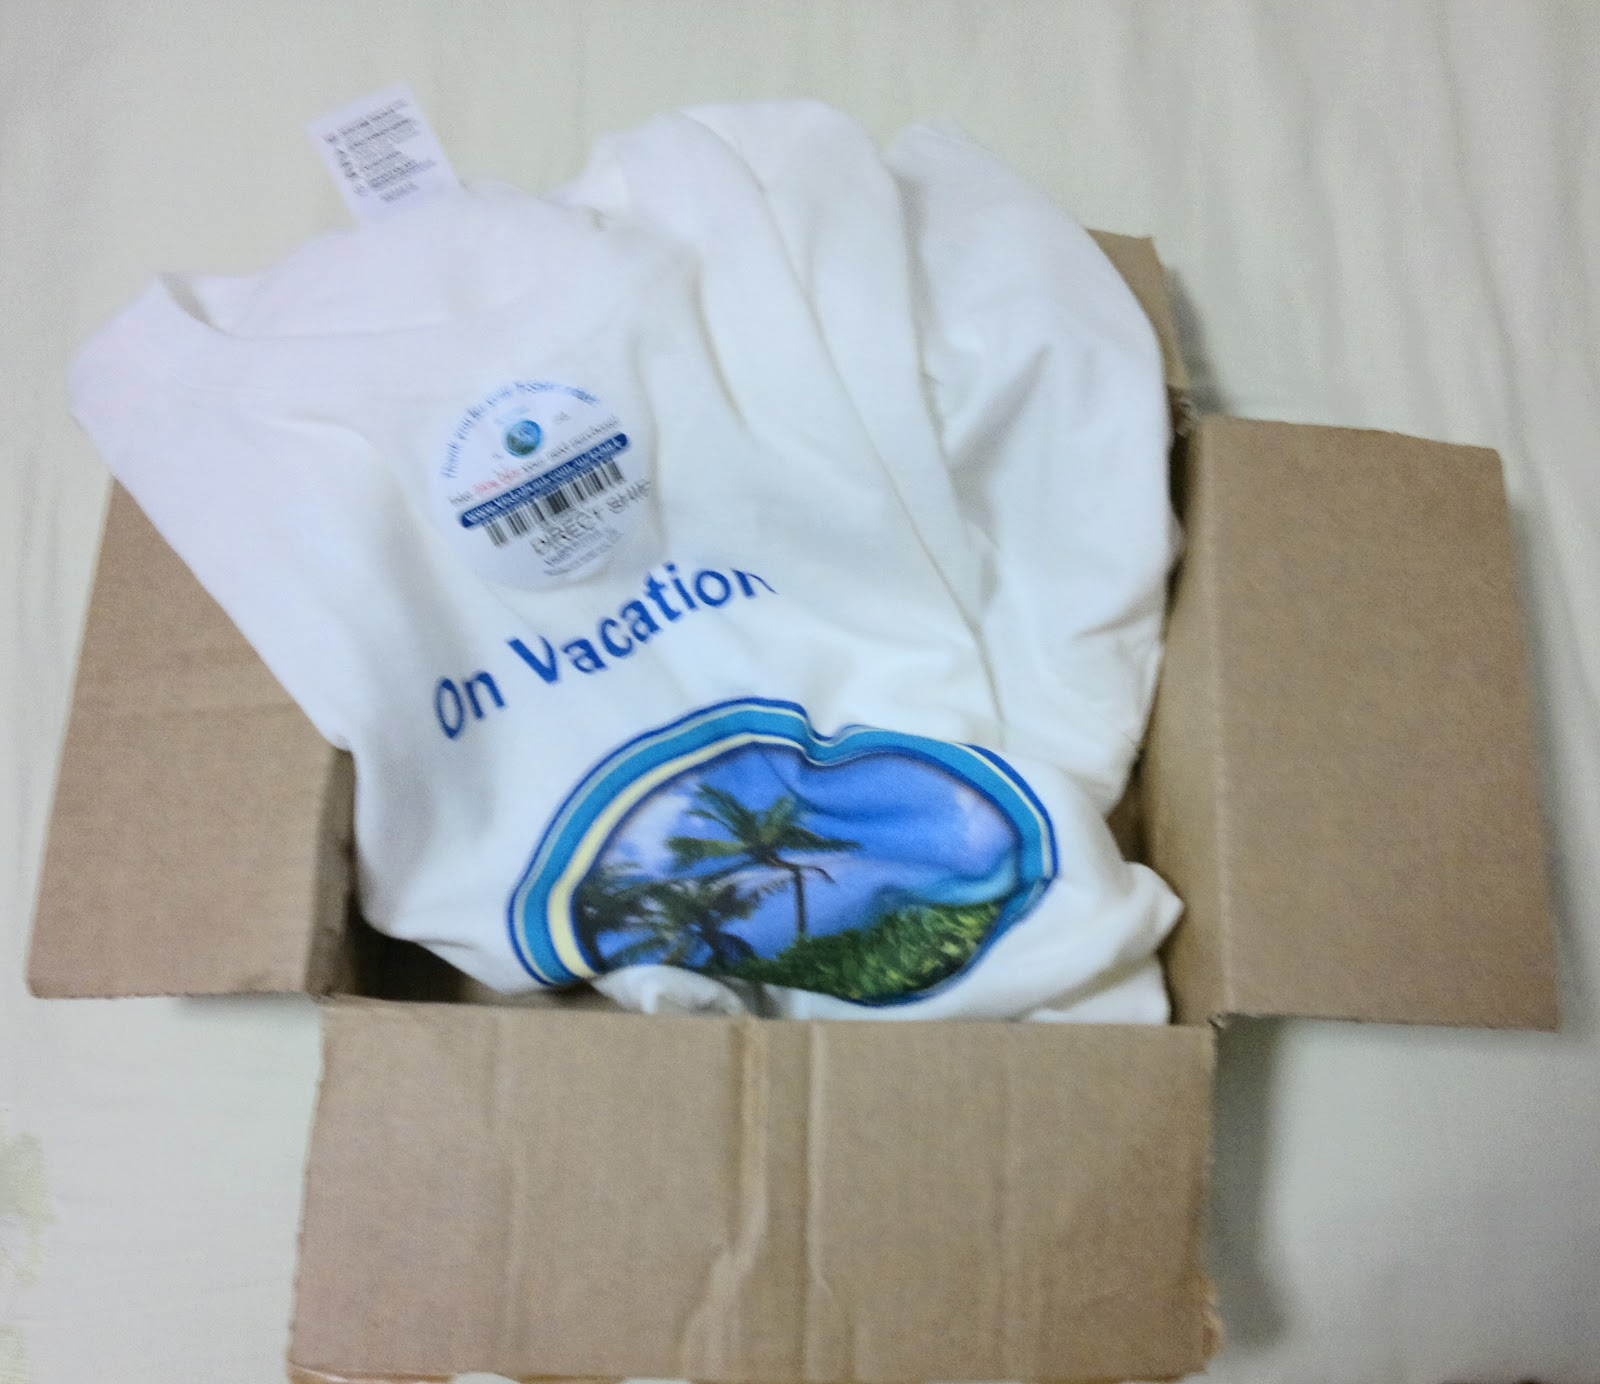 Design t shirt vistaprint - First To Arrive Is My Custom T Shirt That Boasts High Quality Printing And Adherence To Standard Sizing However I Find The T Shirt Material A Little Too